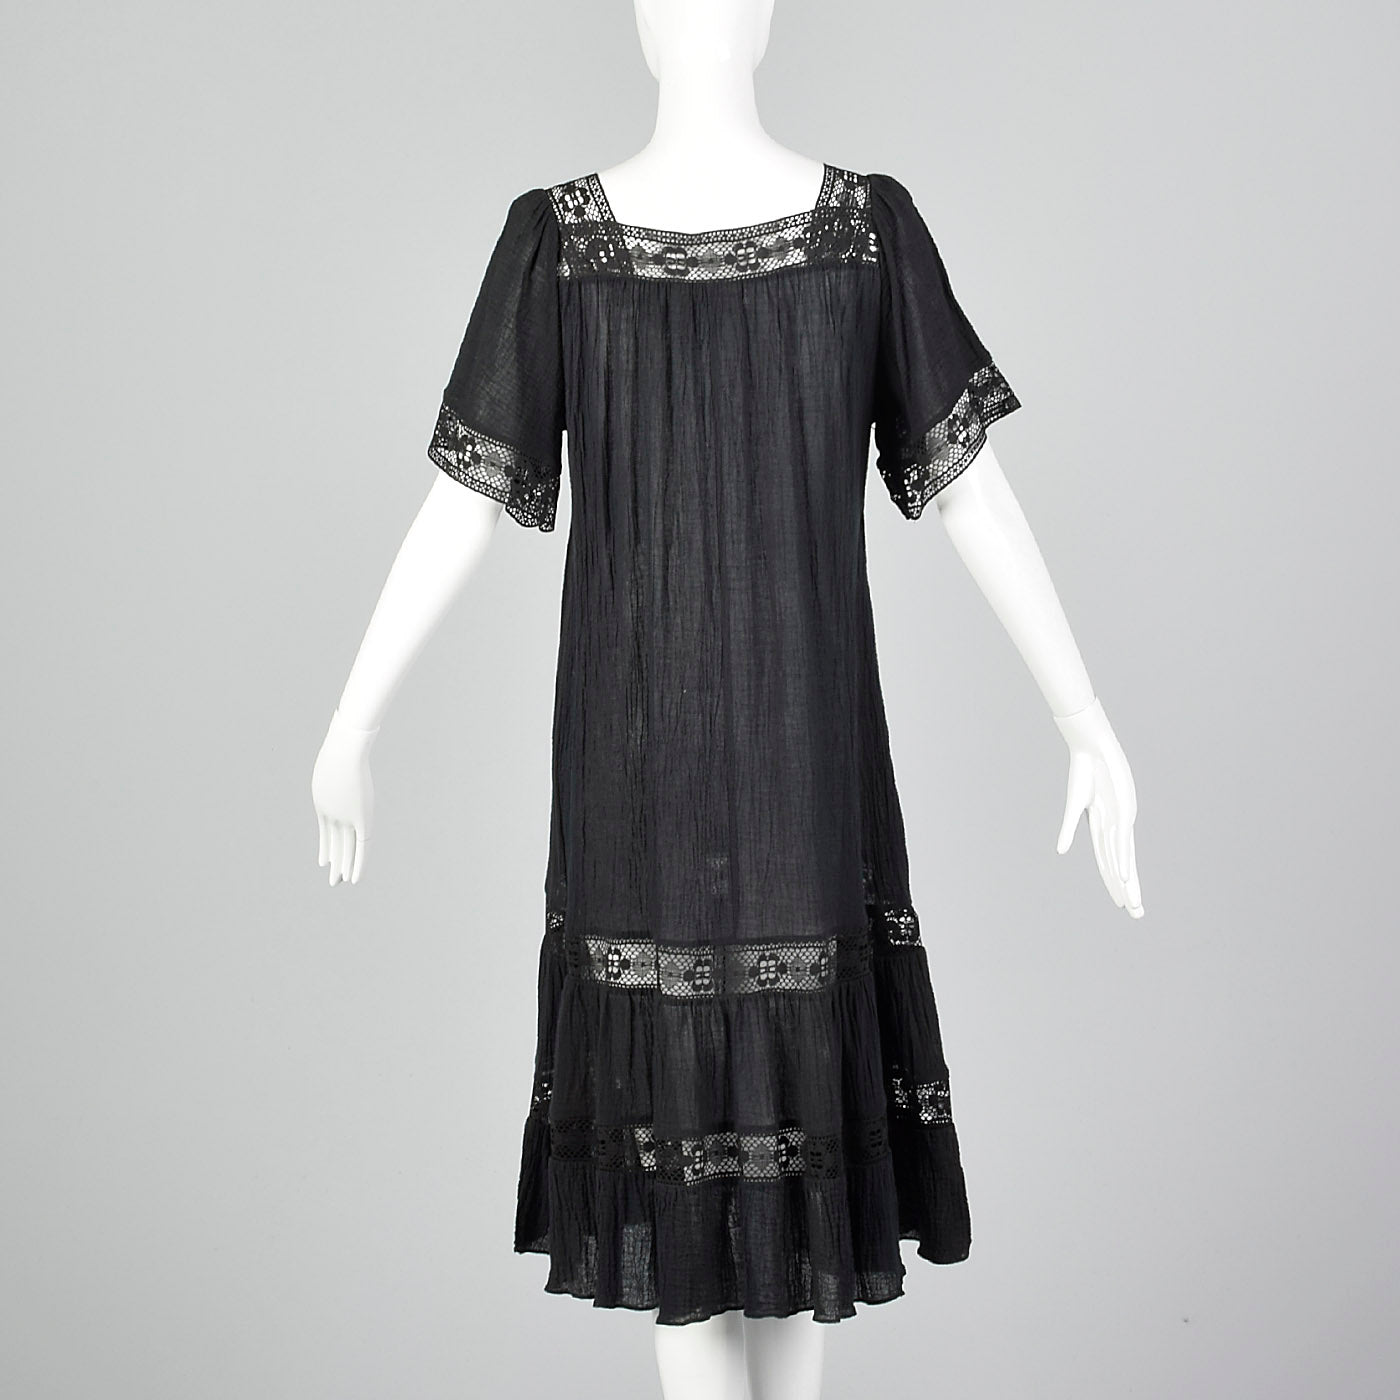 1970s Black Gauze Dress with Lace Trim